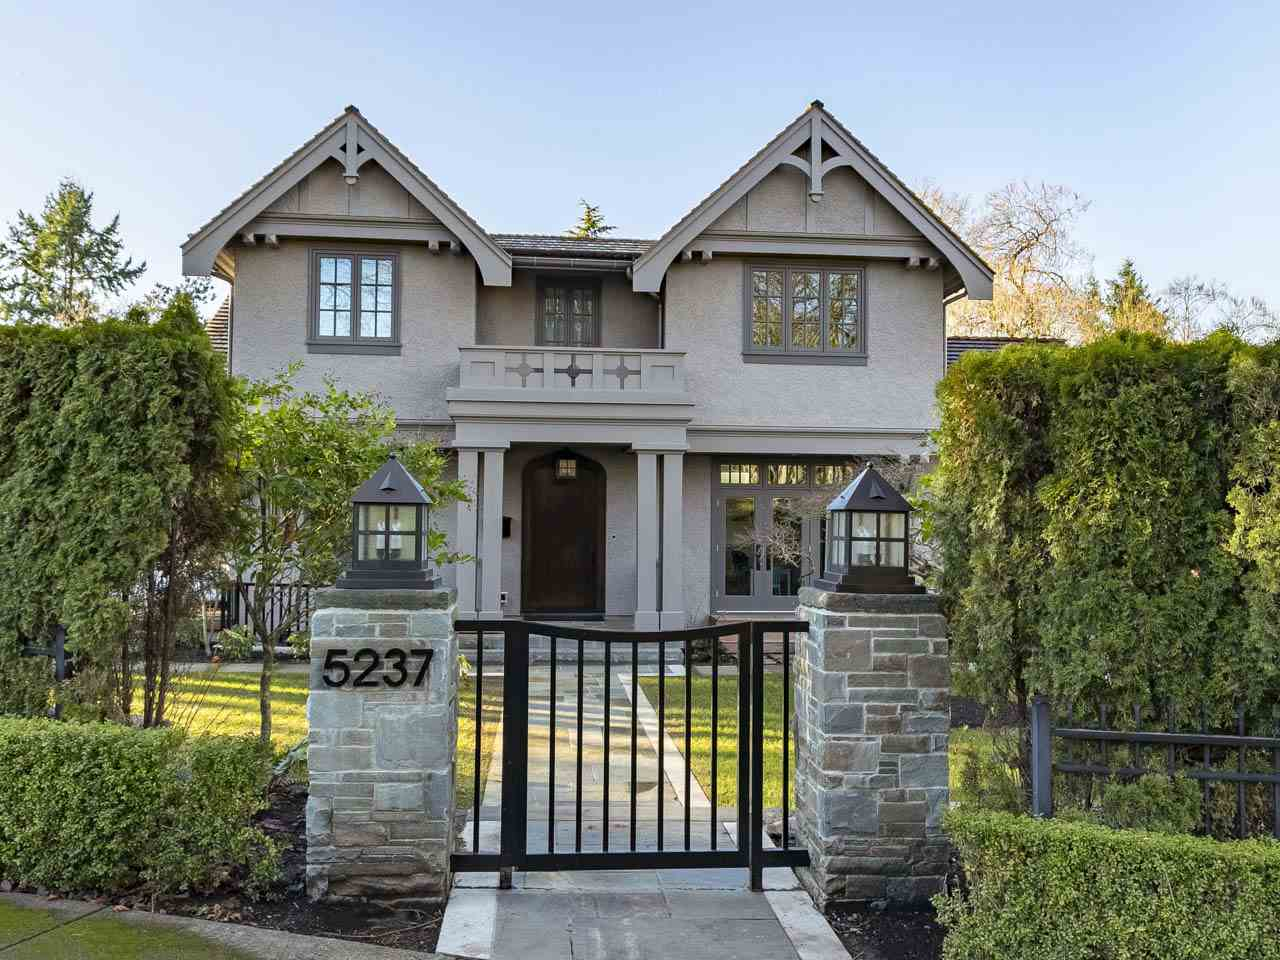 5237 ANGUS Quilchena, Vancouver (R2233831)